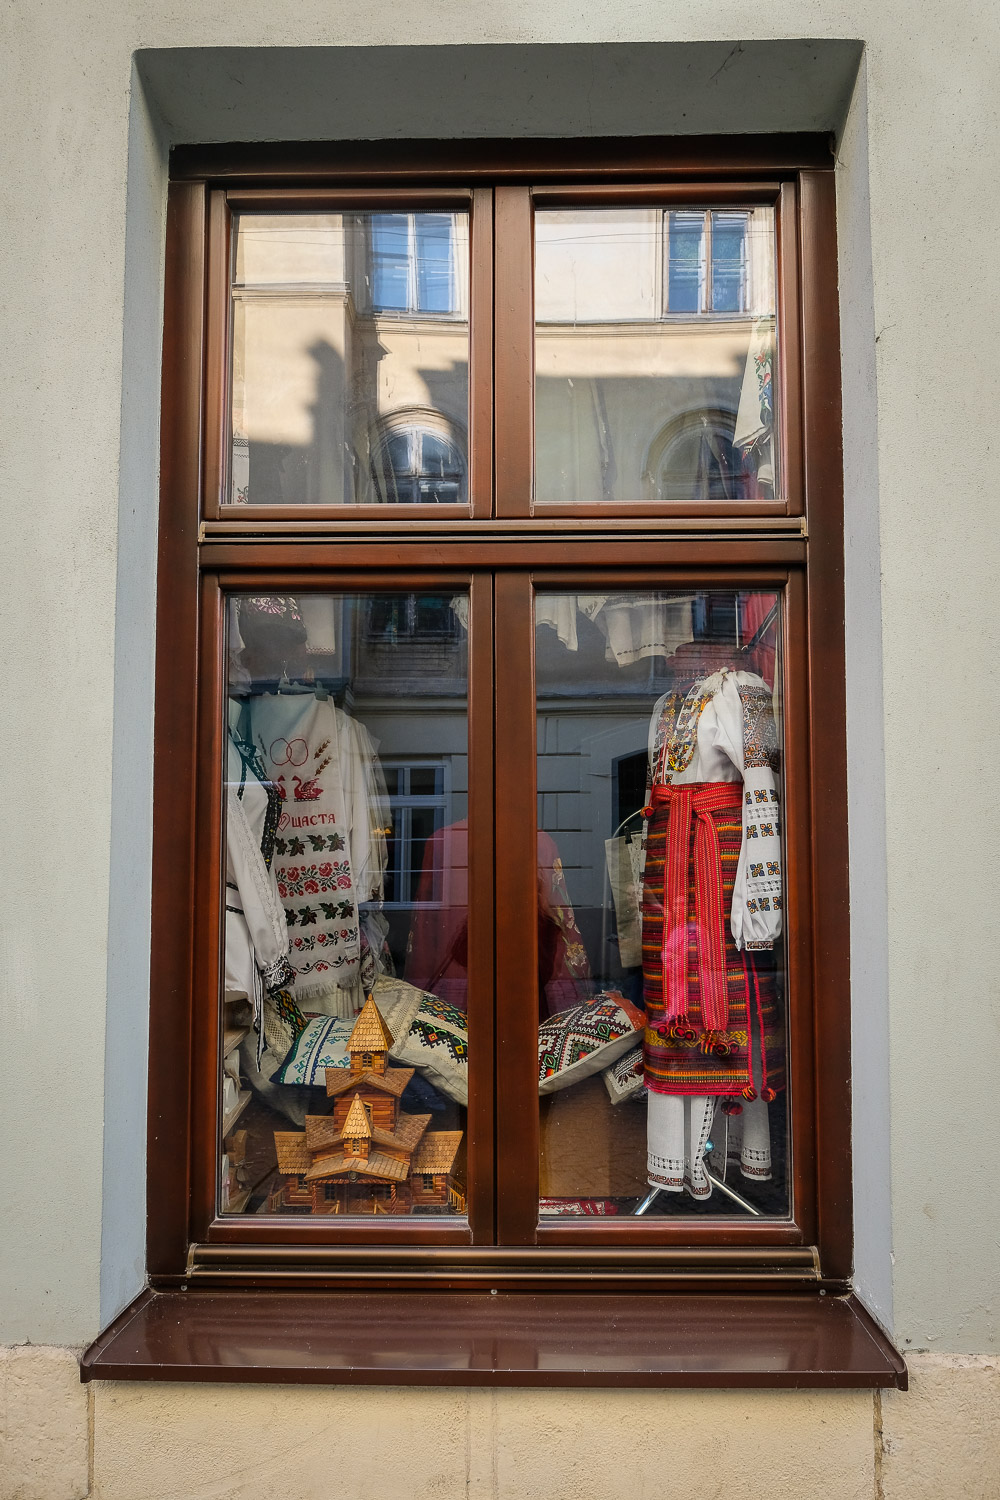 shop window displaying traditional Ukrainian embroidery